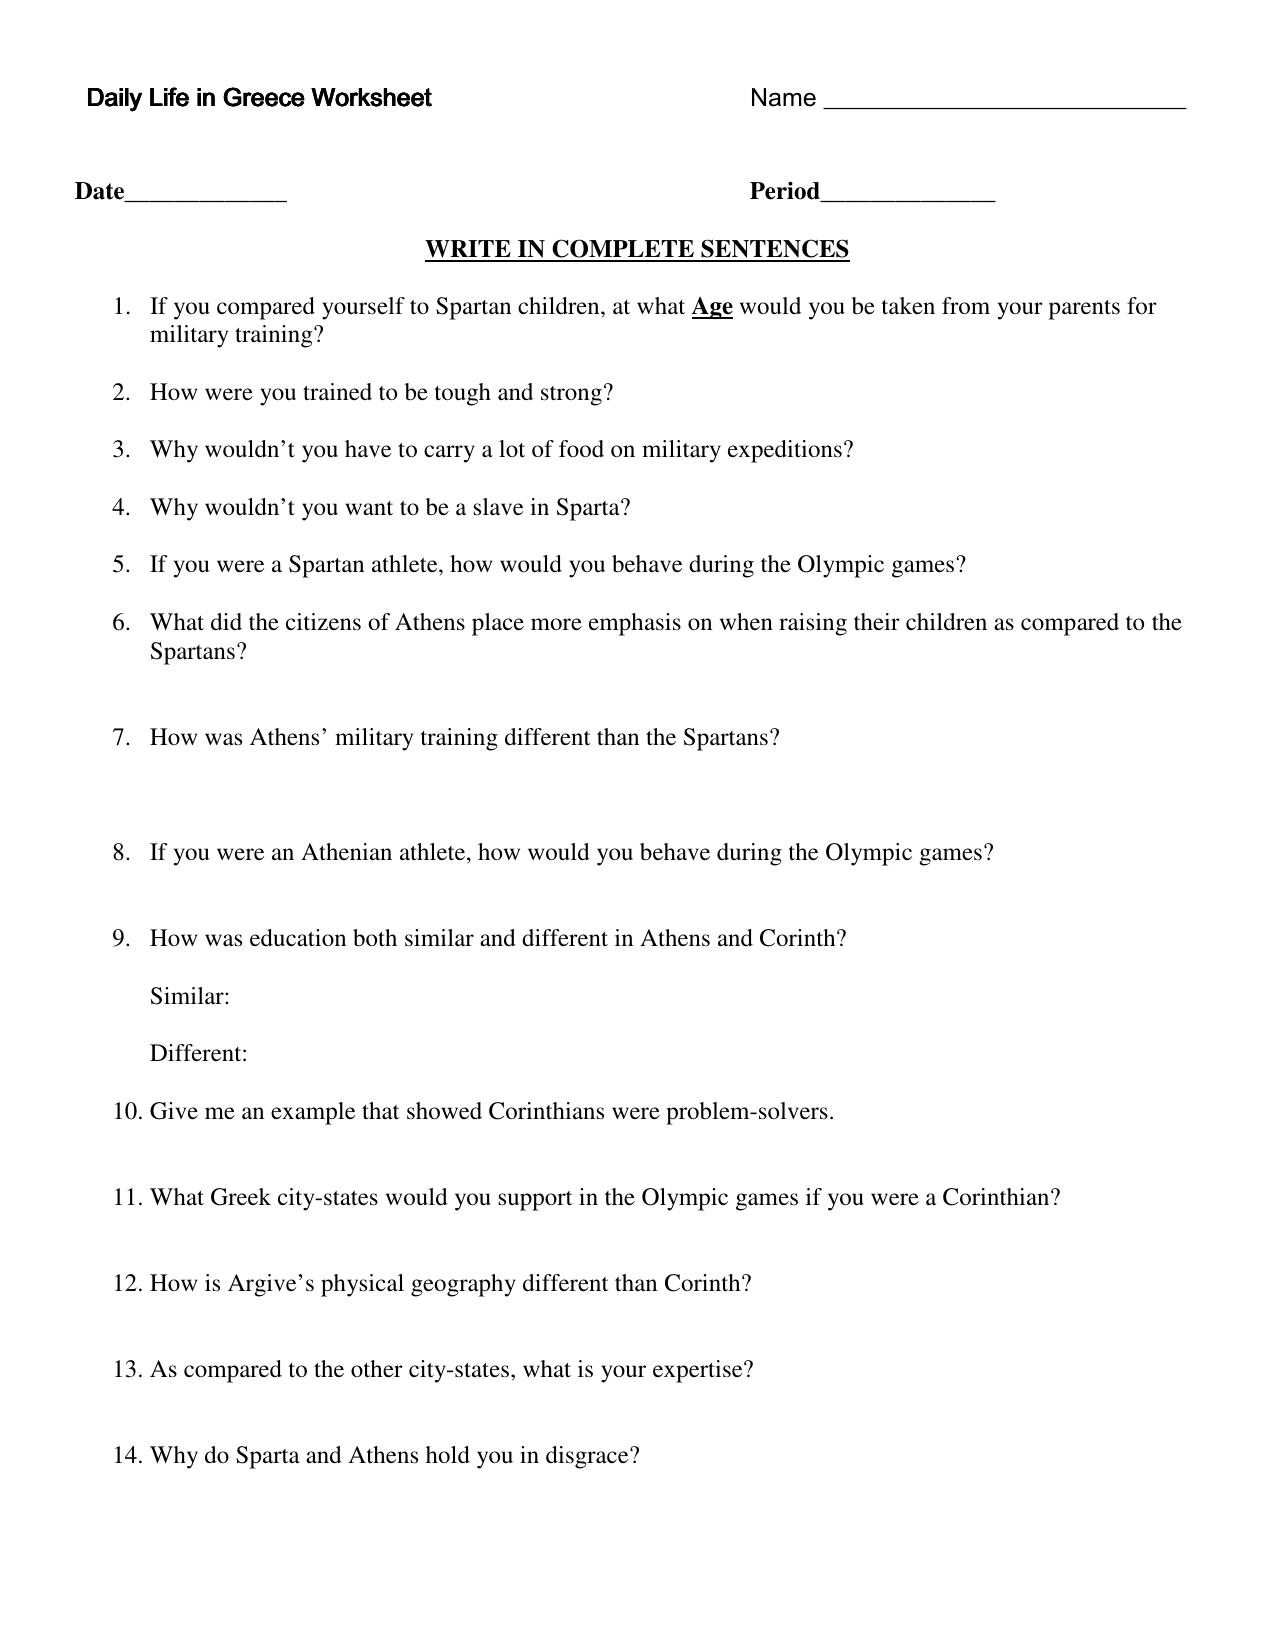 Daily Life In Greece Worksheet Daily Life In Greece Worksheet